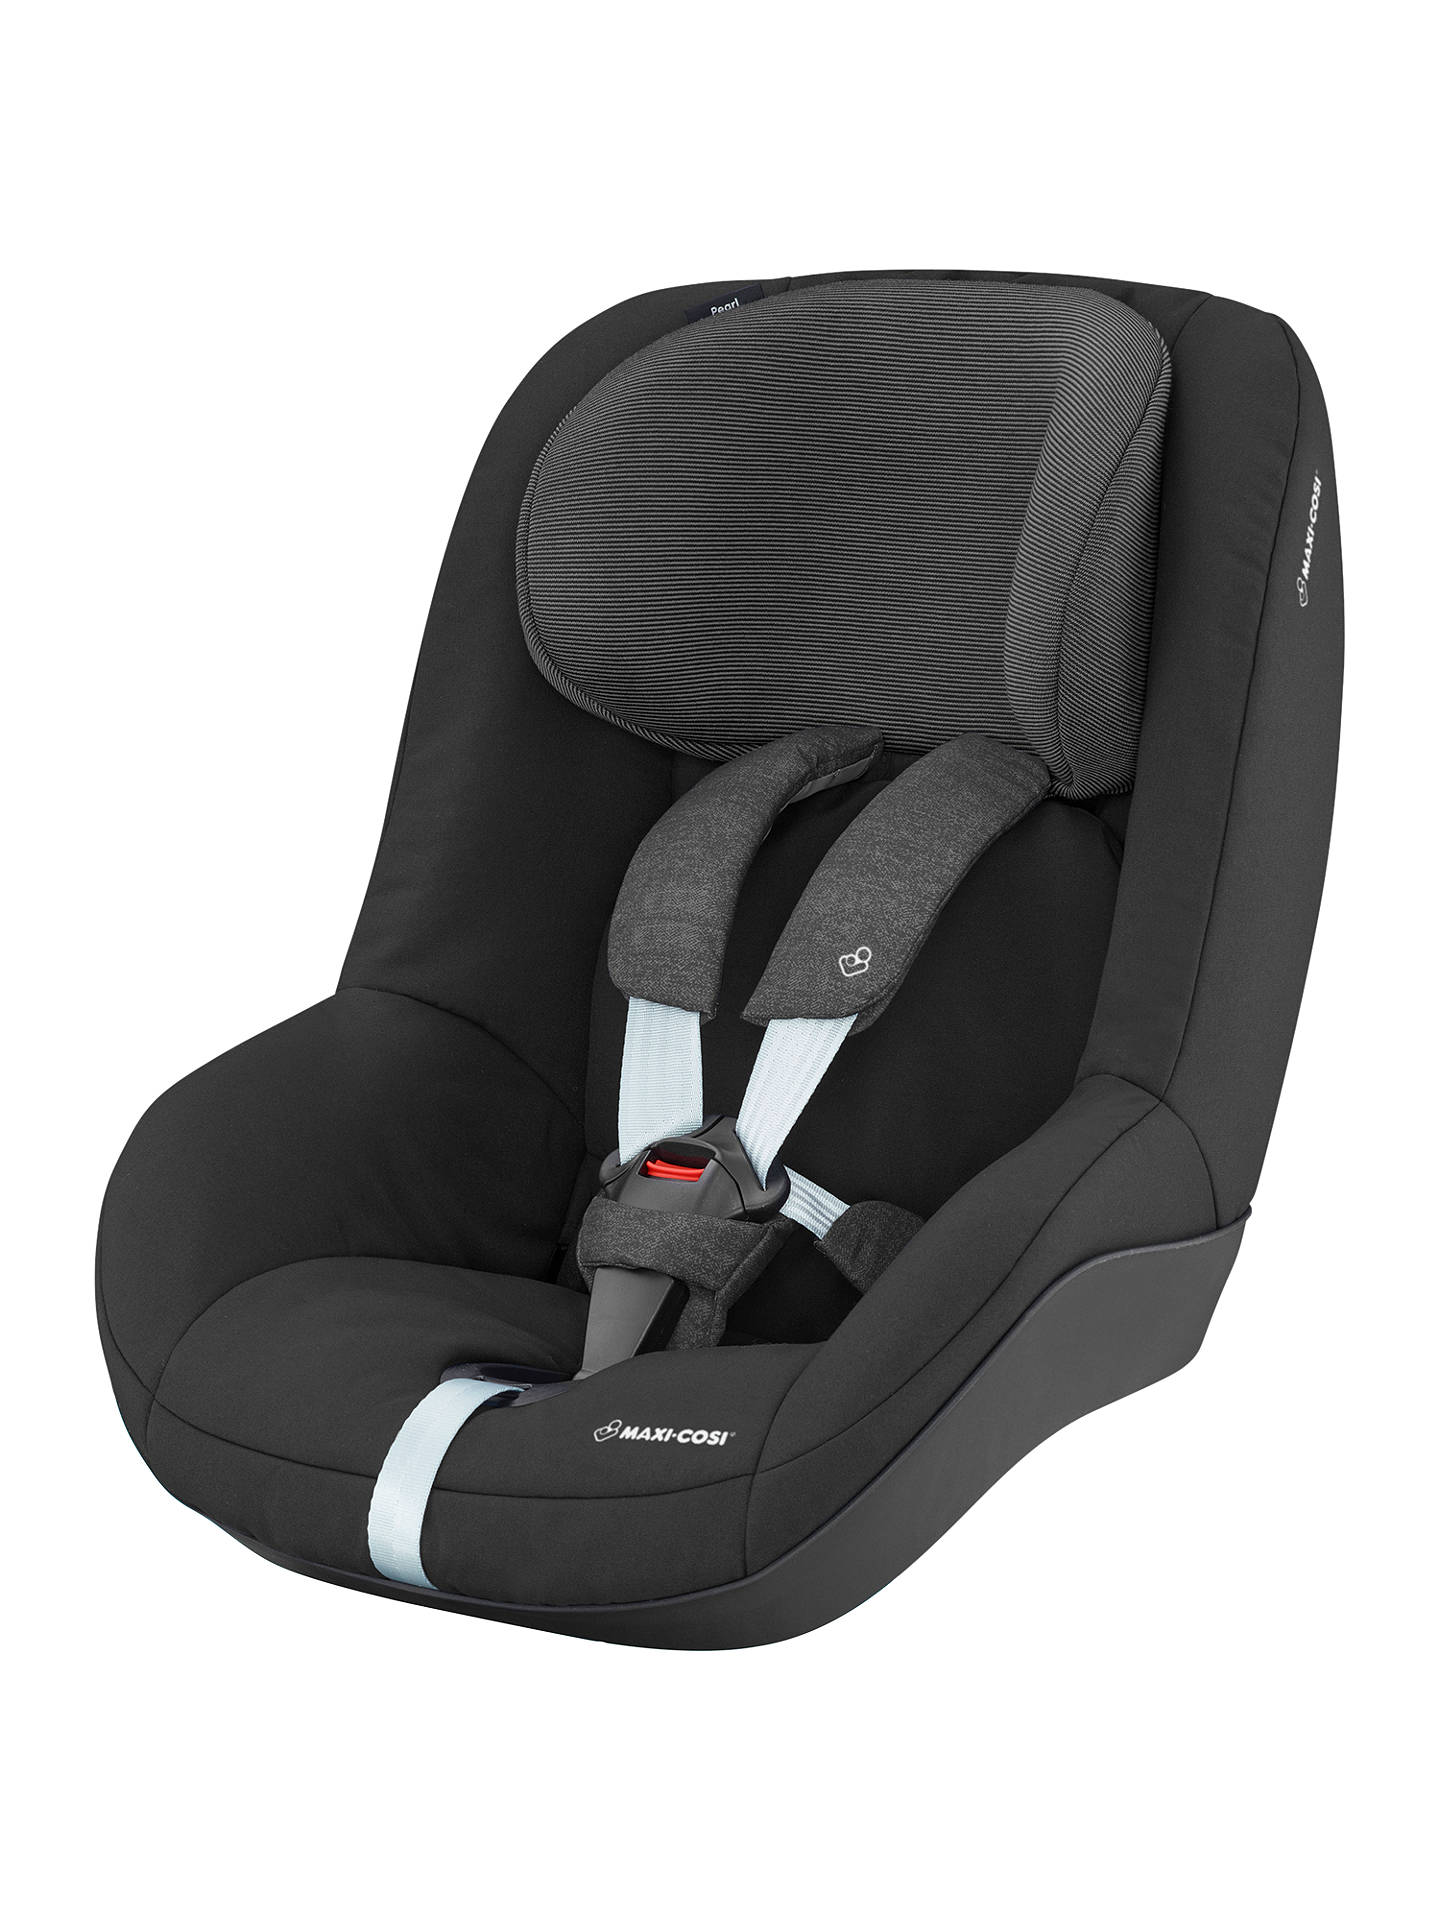 maxi cosi pearl group 1 car seat nomad black at john. Black Bedroom Furniture Sets. Home Design Ideas